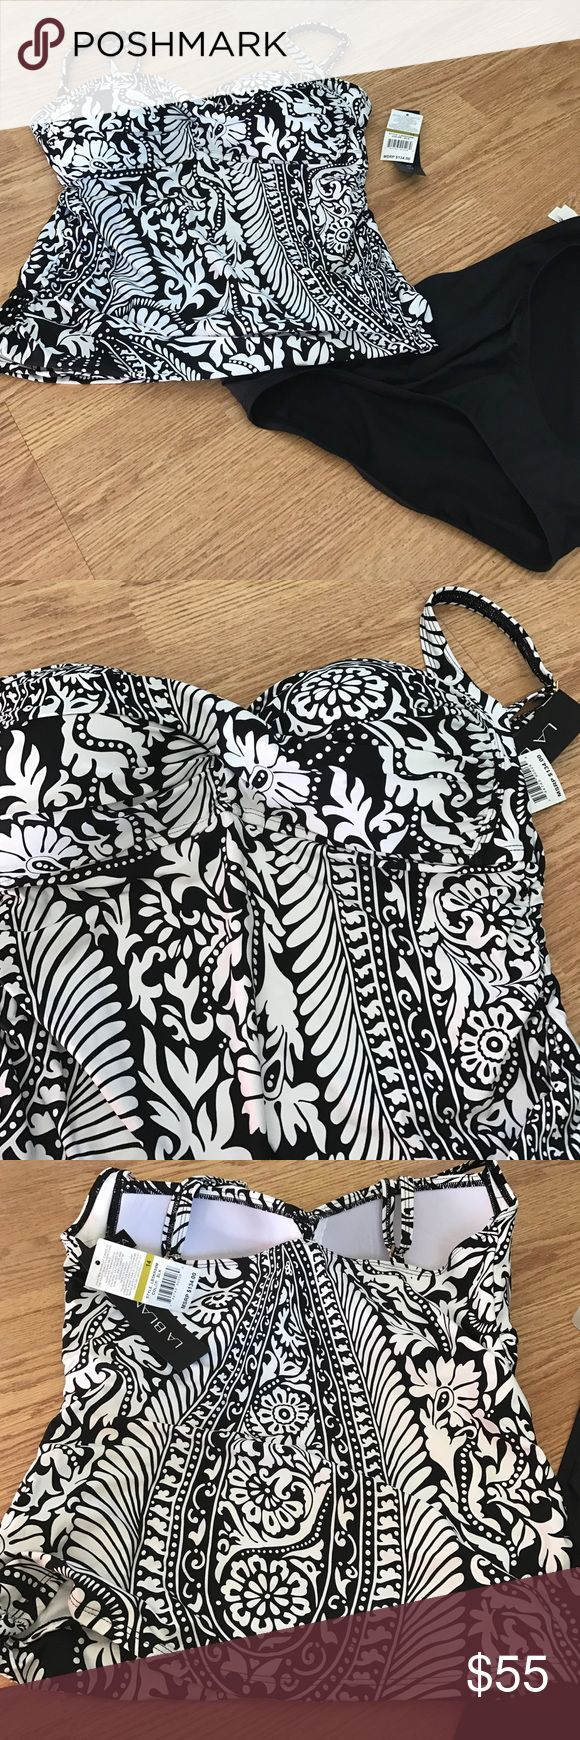 La Blanca black and white tankini NEW size 14 La Blanca black and white tankini size 14 NEW La Blanca Swim